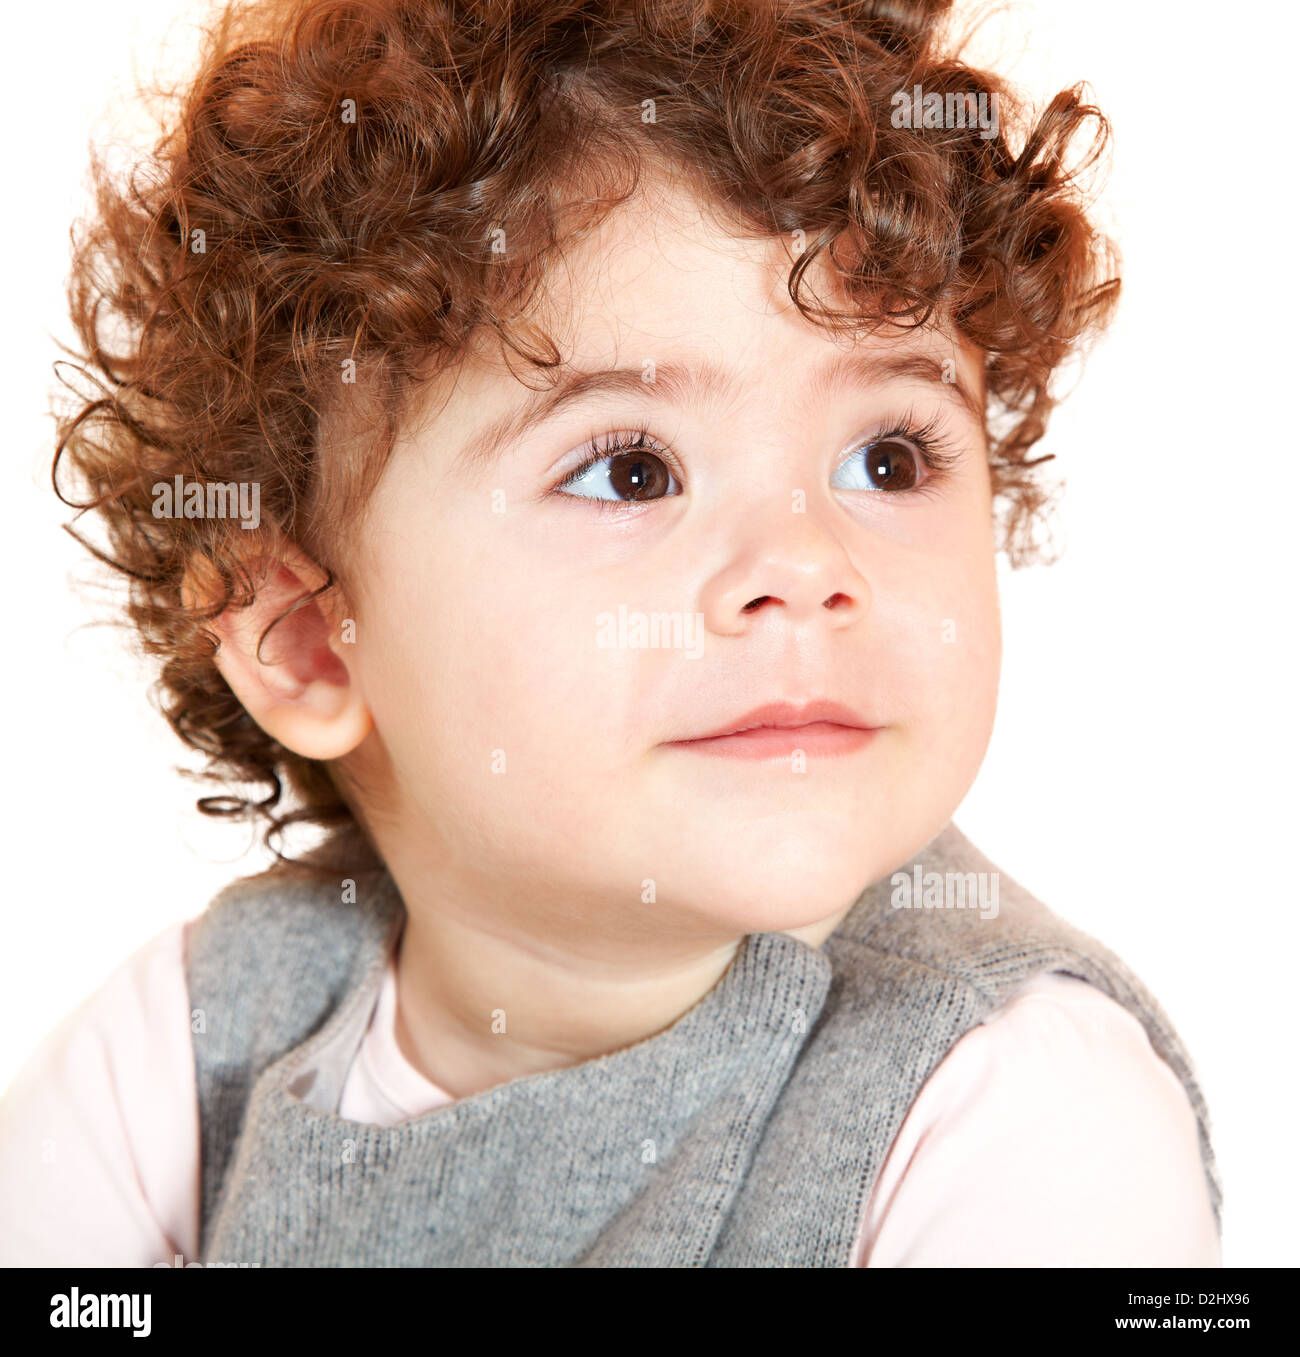 Two Year Old Baby Girl With Curly Hair Portrait Stock Photo